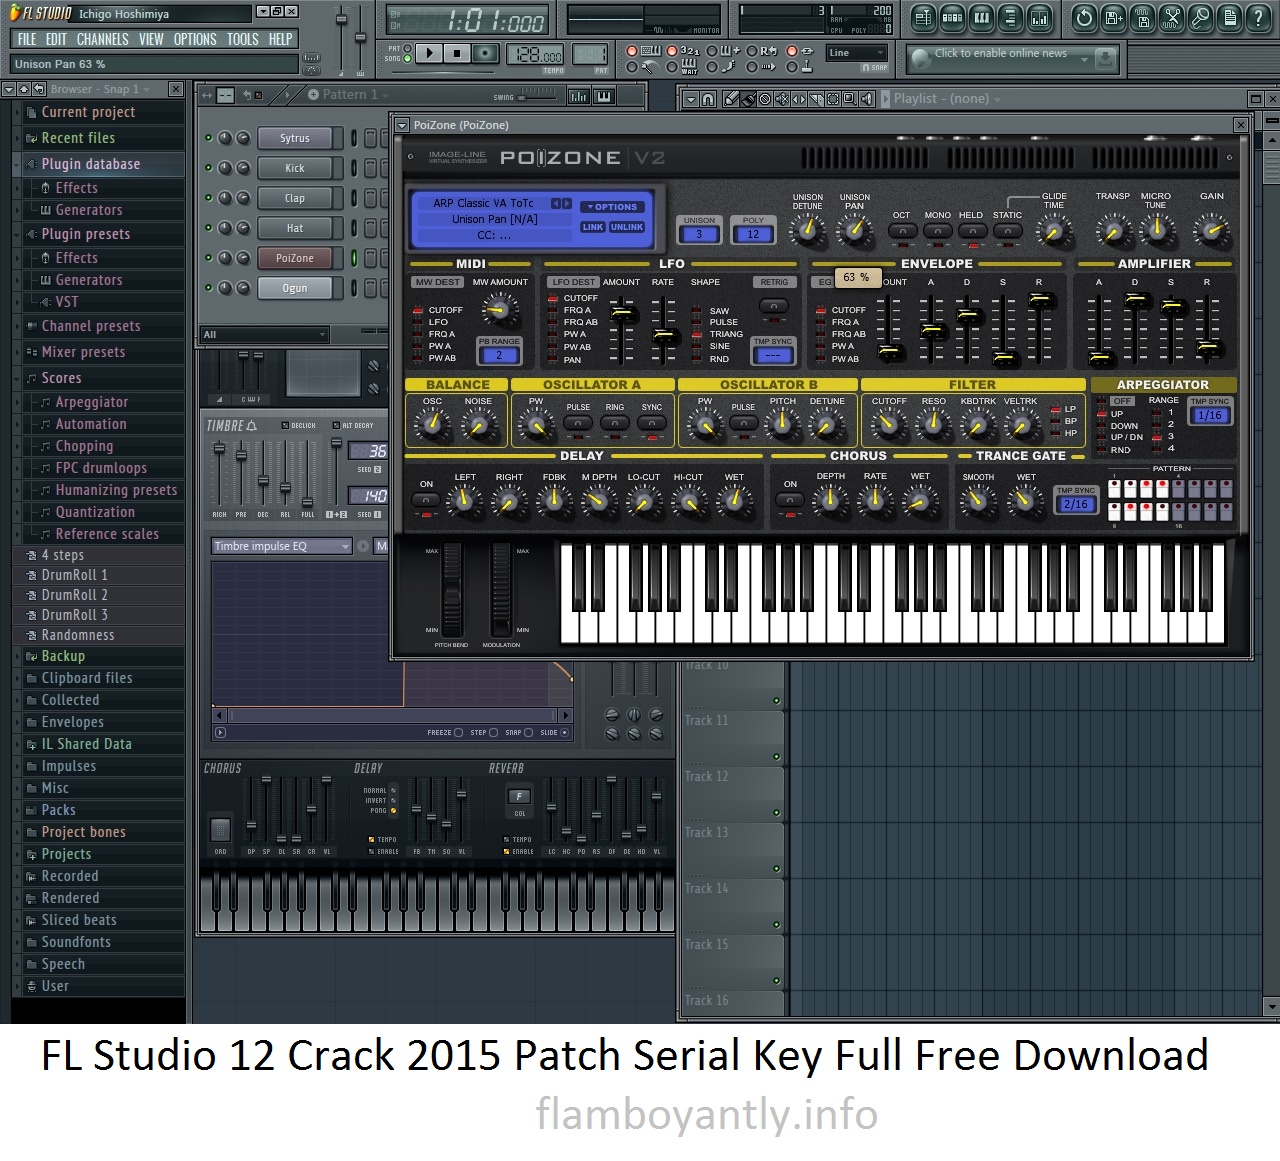 FL Studio 12 Crack 2015 Patch Serial Key Full Free Download